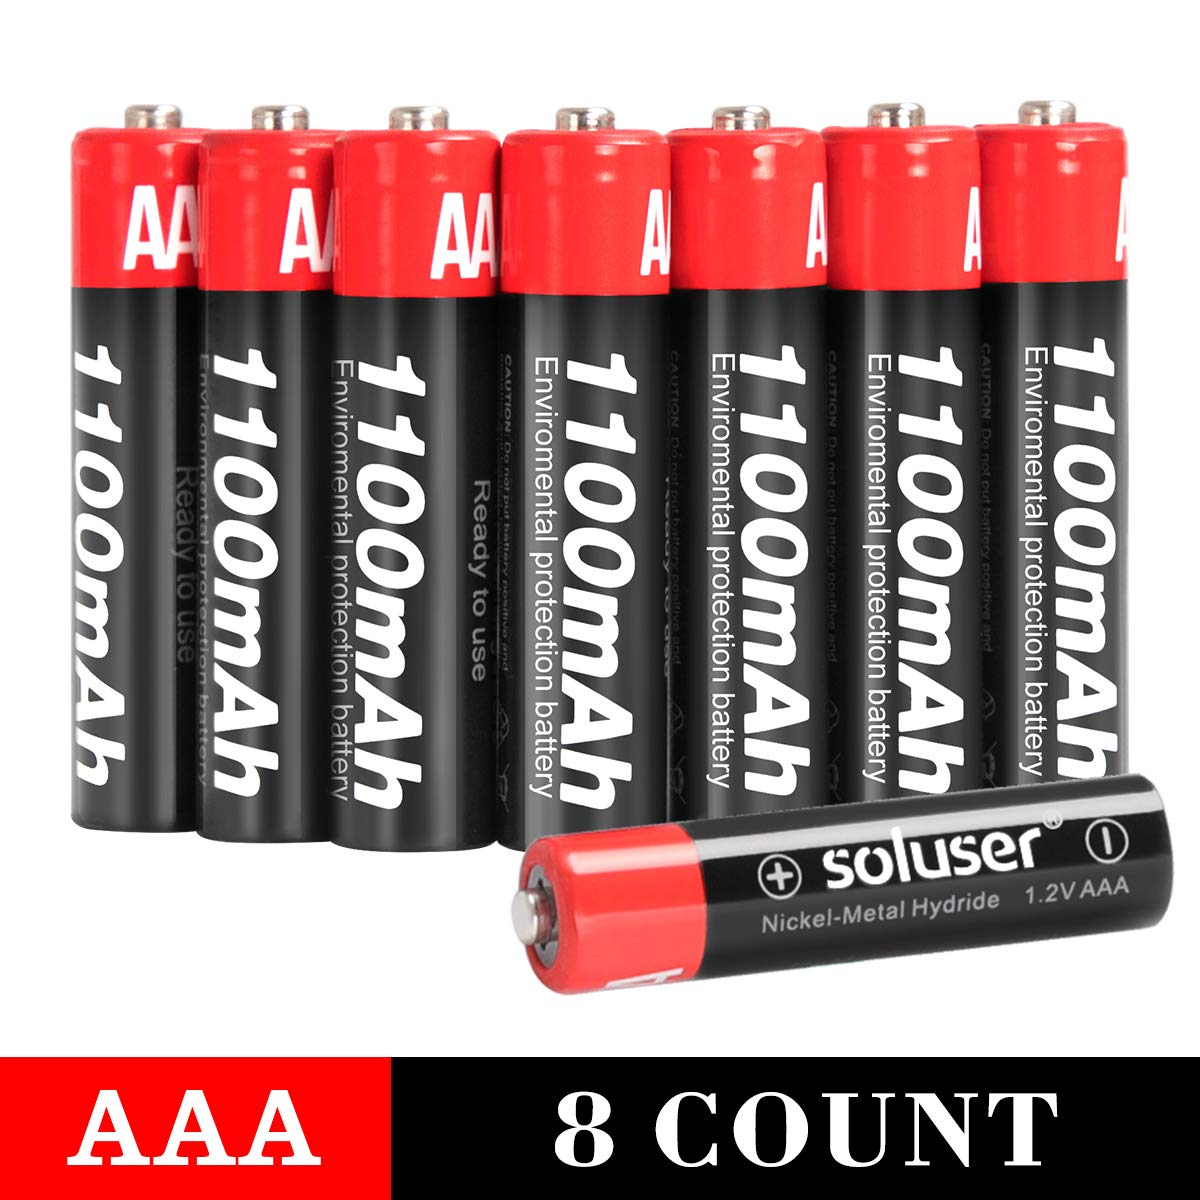 AAA Batteries Rechargeable, Soluser Rechargeable